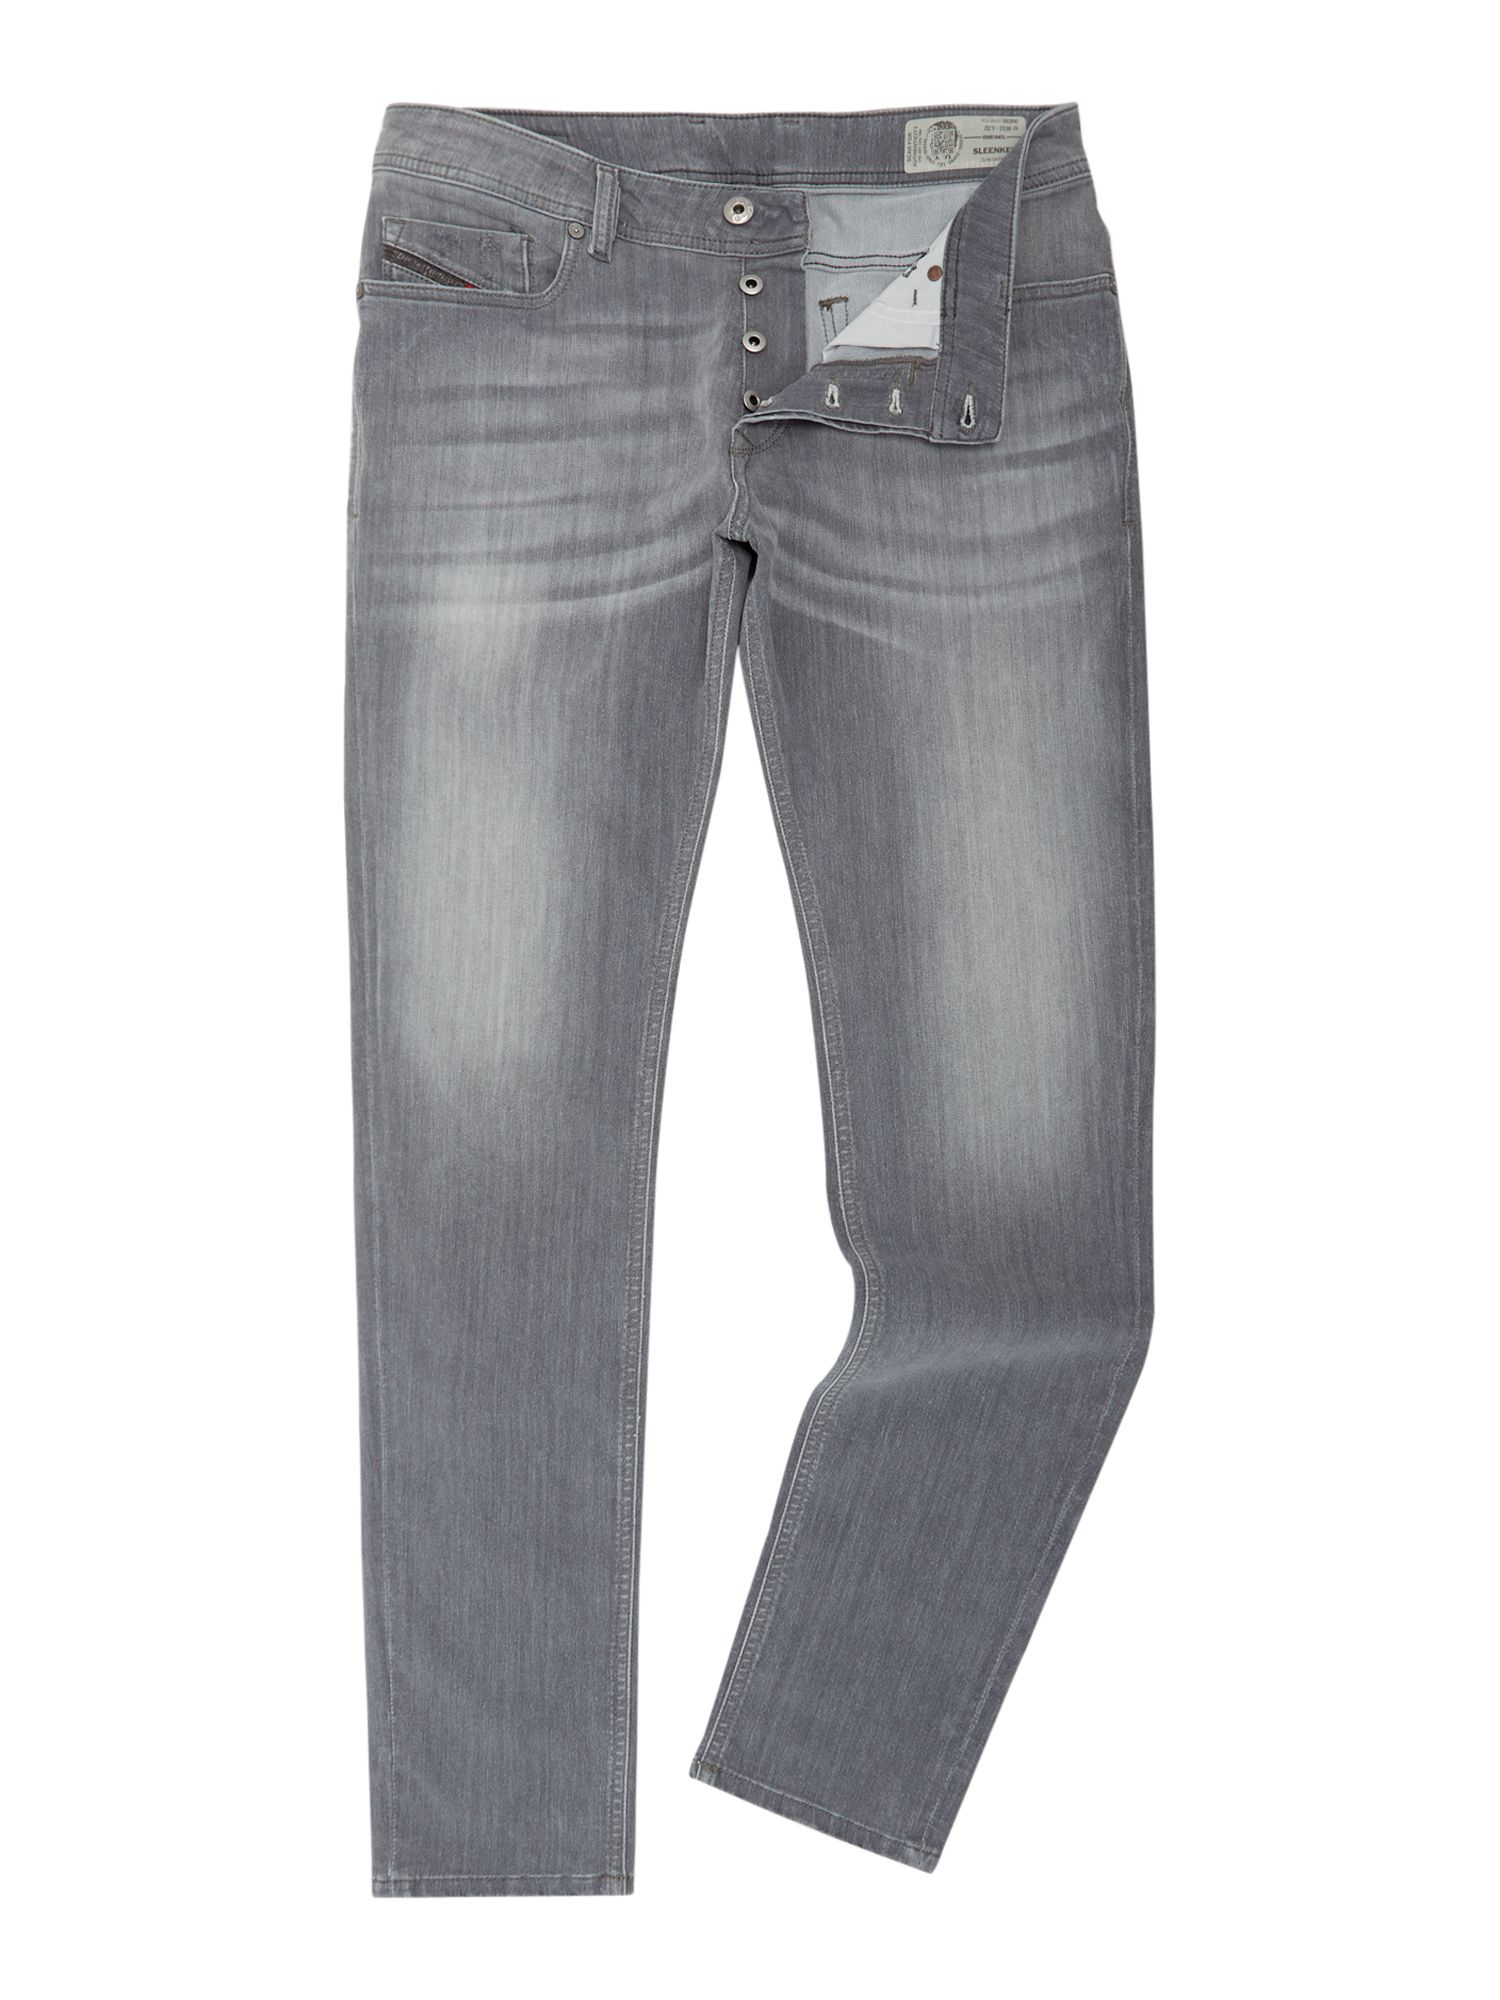 Mens Sleenker 683m Ultrasoft Slim Tapered Fit Jeans, Grey